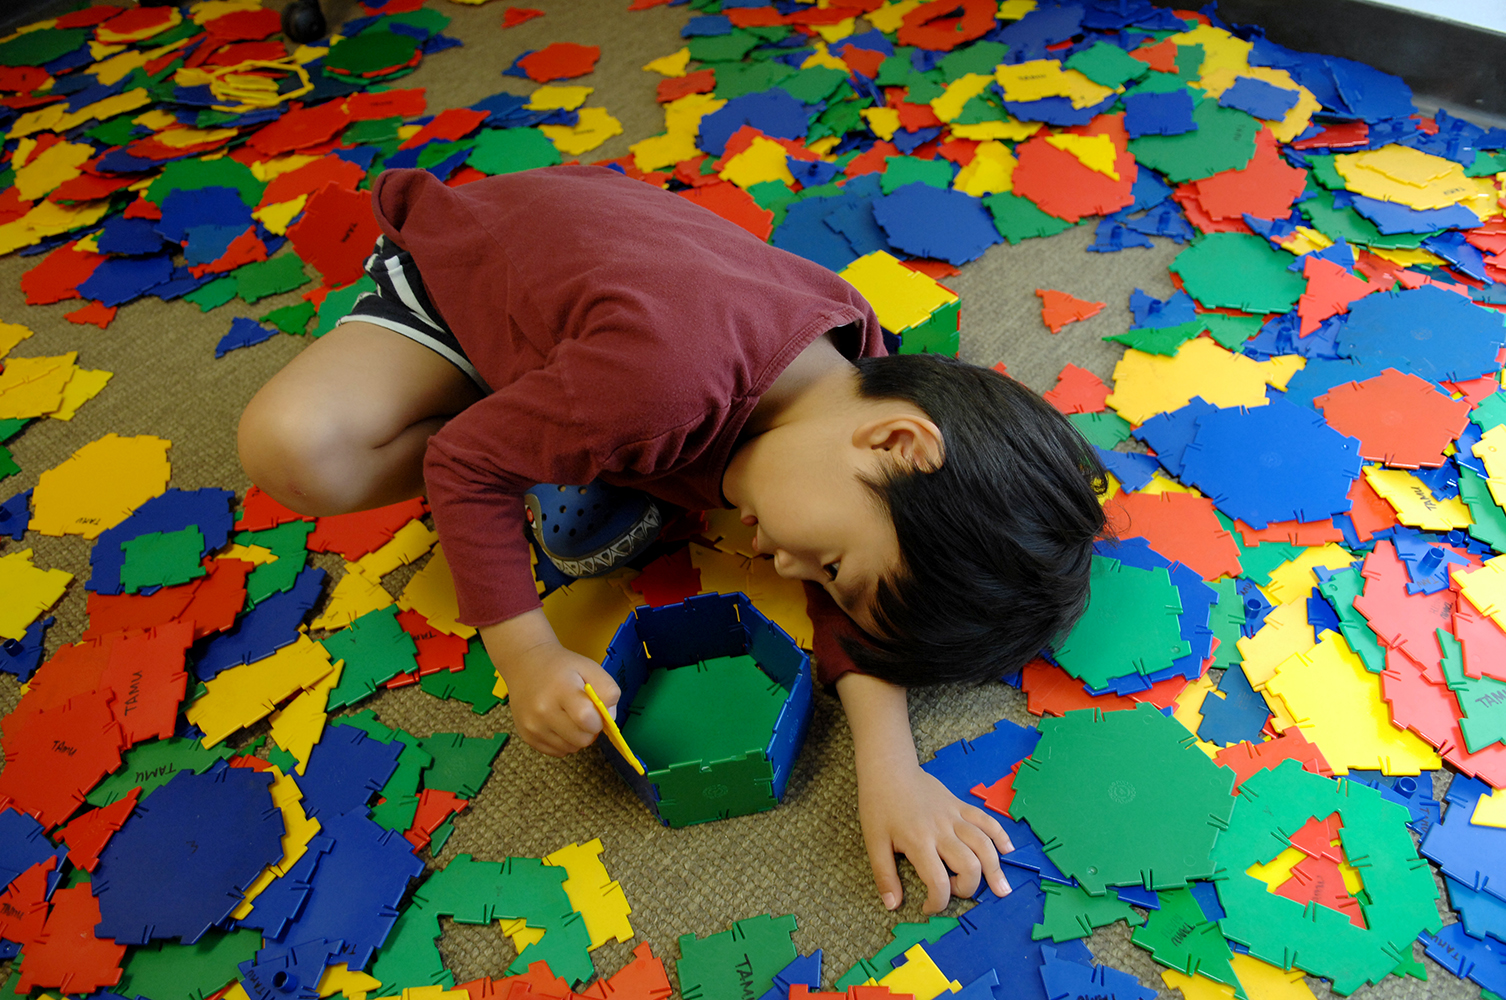 An elementary student sits and builds a tower on the floor with colorful tiles strewn around him